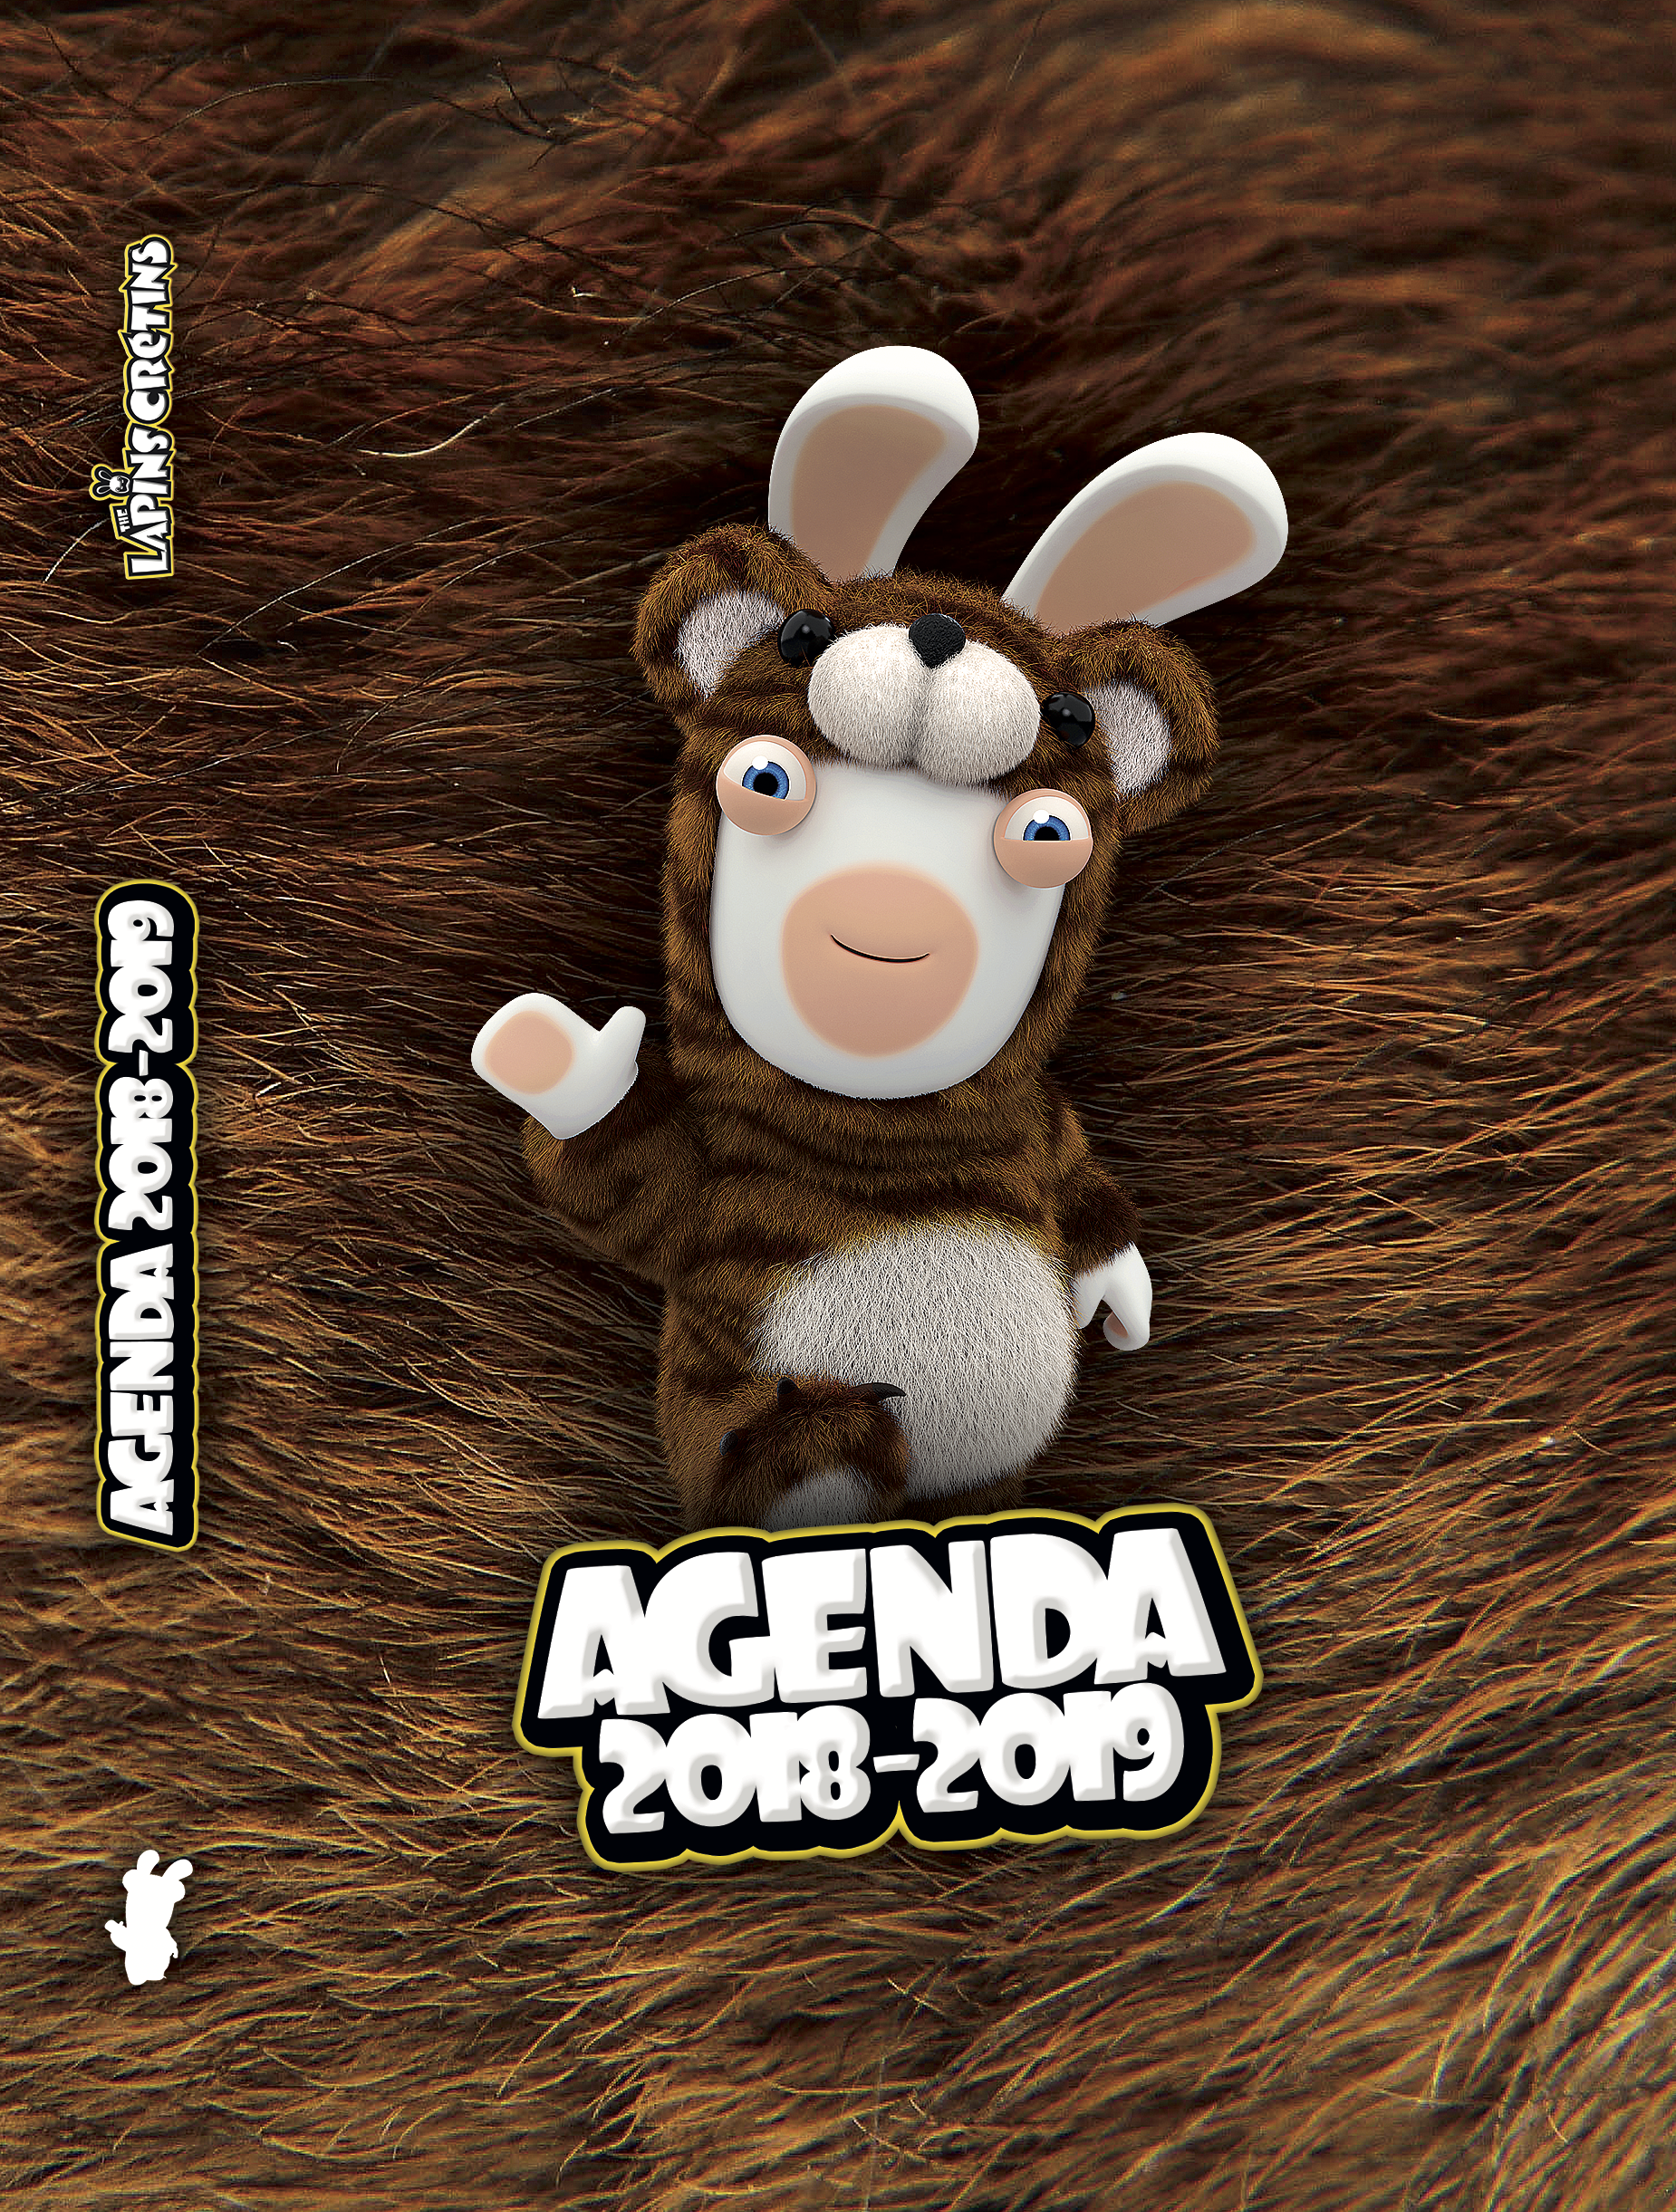 agenda lapins crétins ours